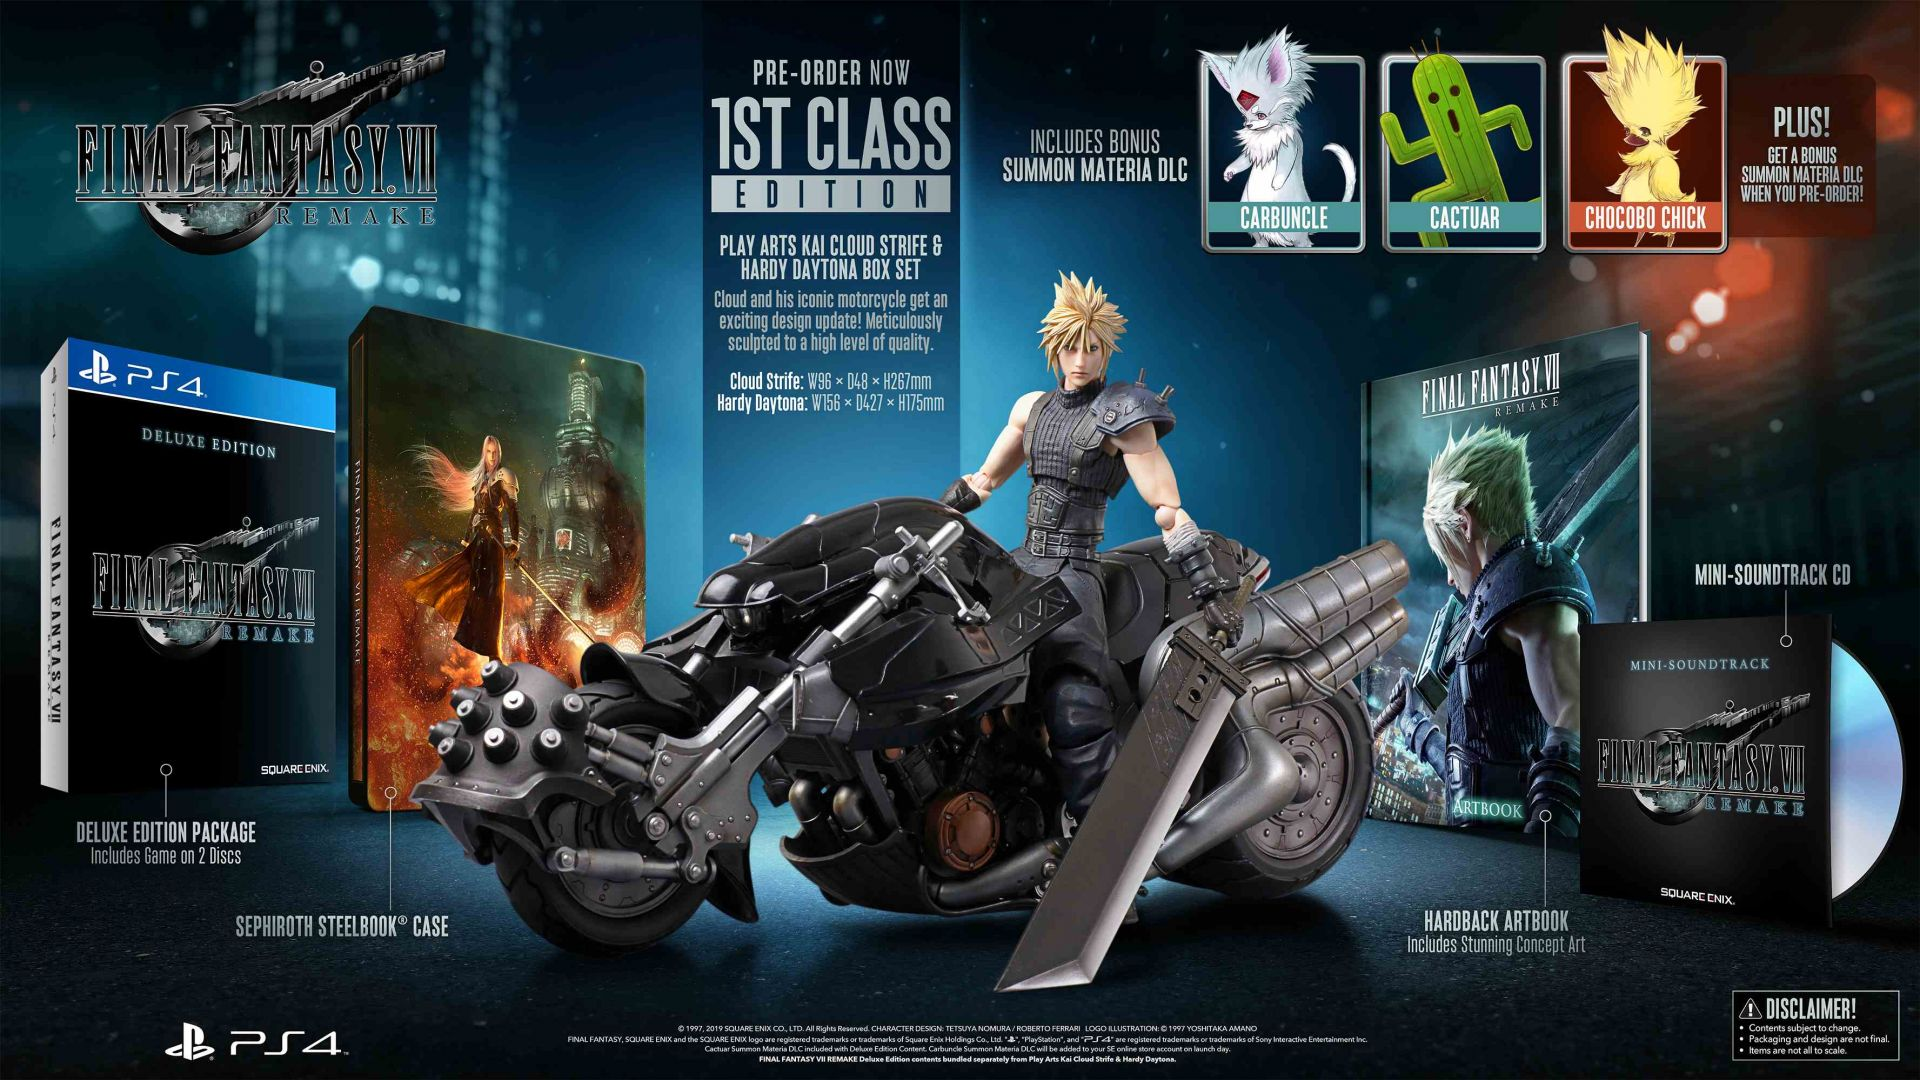 FINAL FANTASY VII REMAKE - 1st Class Edition [PS4] | Square